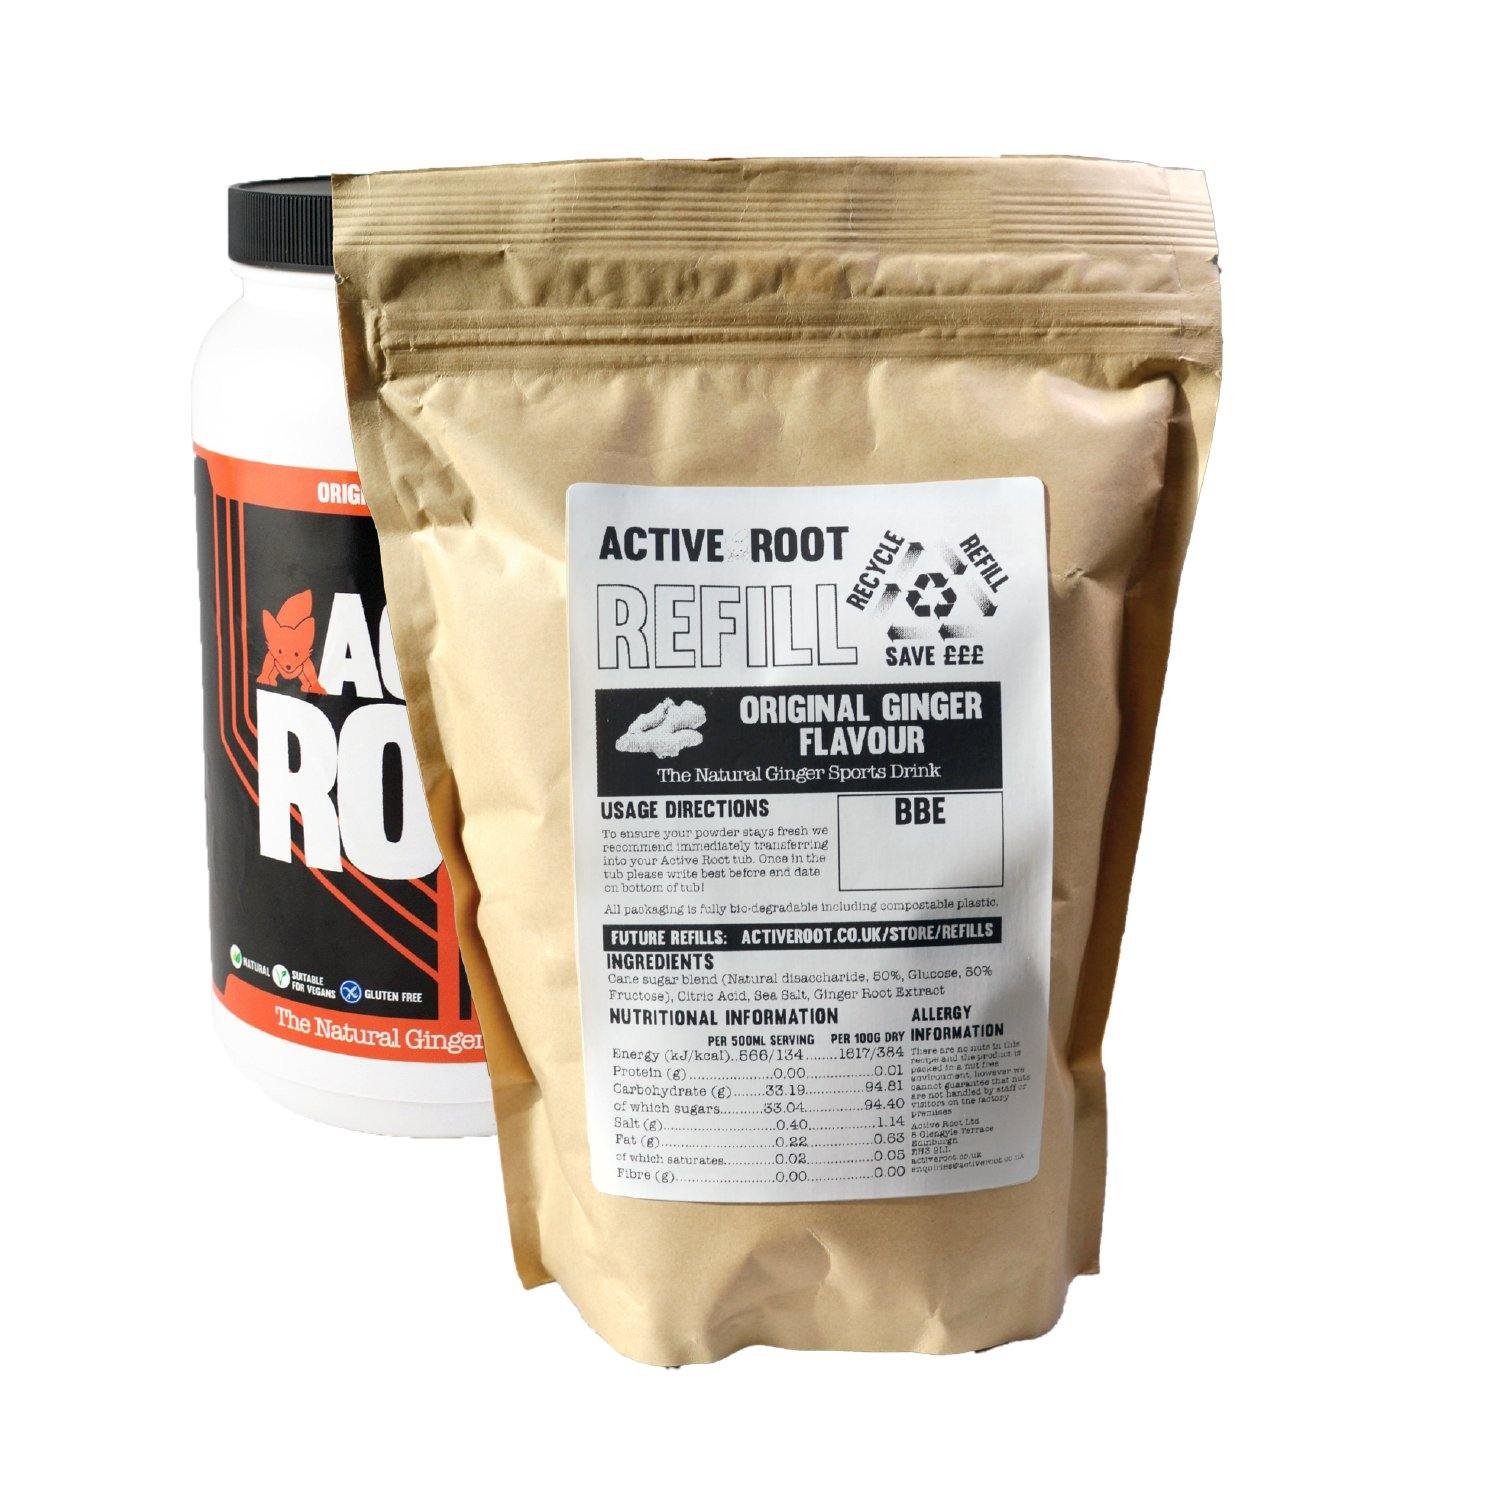 Active Root Tub Refill Original Ginger